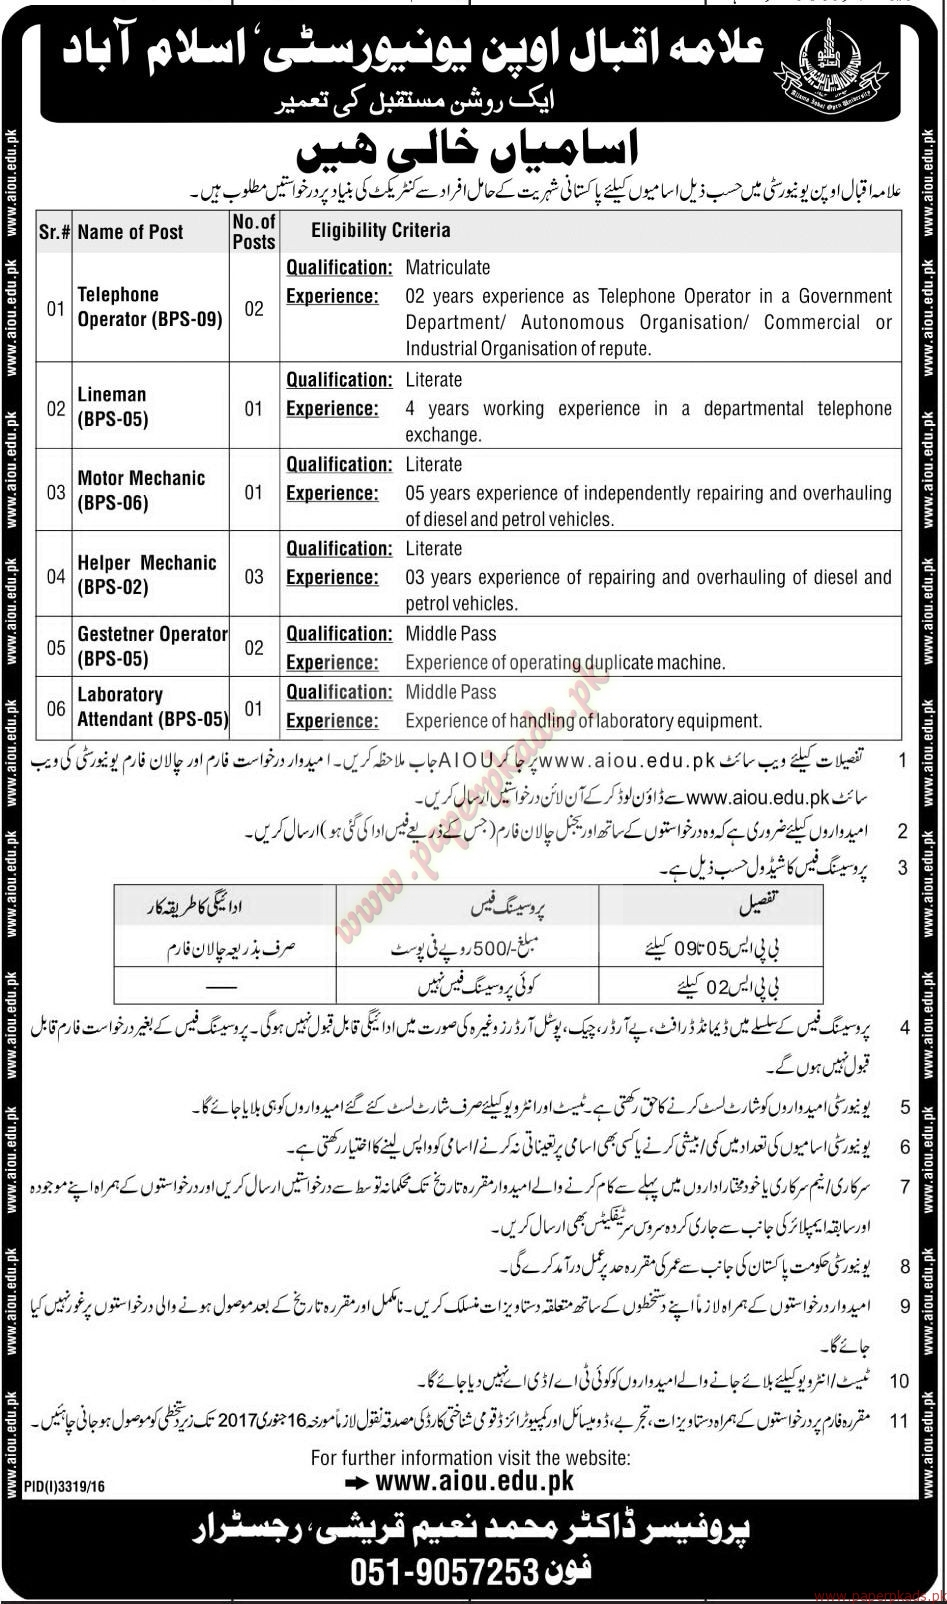 Allama Iqbal Open University Islamabad Jobs - Jang Jobs ads 31 December 2016